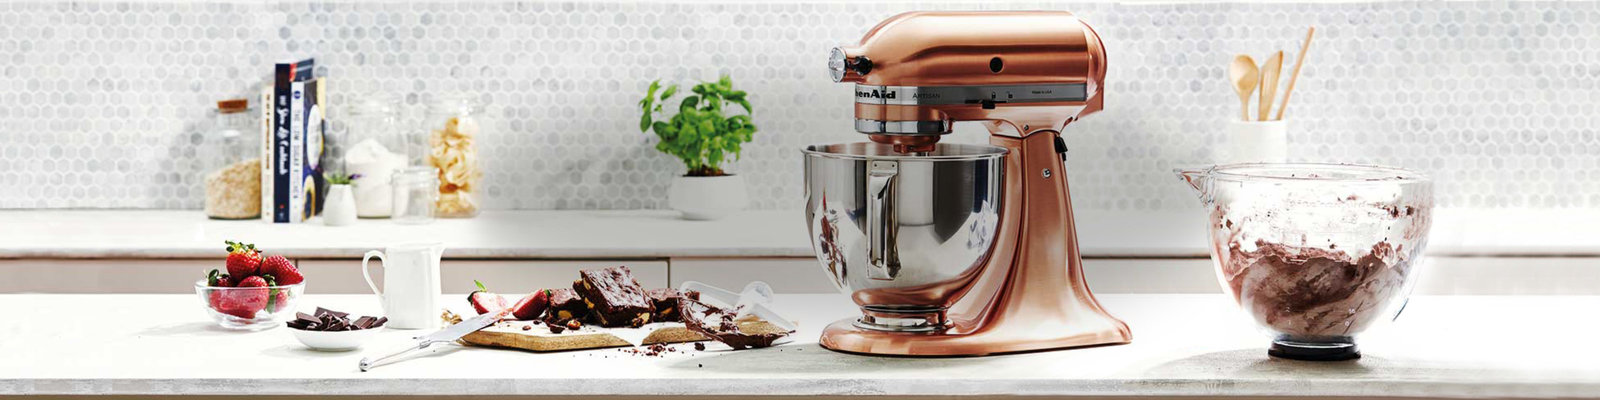 Terrific Kitchenaid Appliances Appliances Online Download Free Architecture Designs Scobabritishbridgeorg